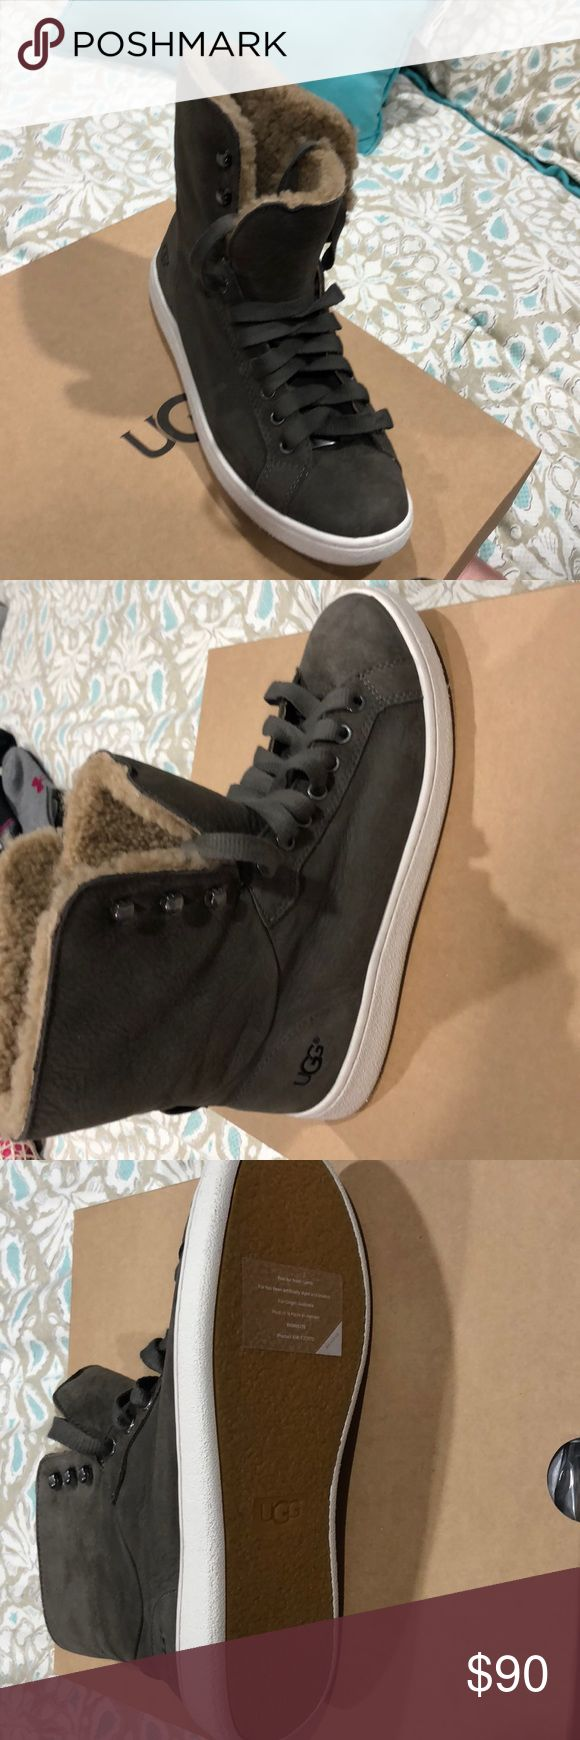 Brand new in box UGG sneakers Brand new UGG sneakers UGG Shoes Sneakers